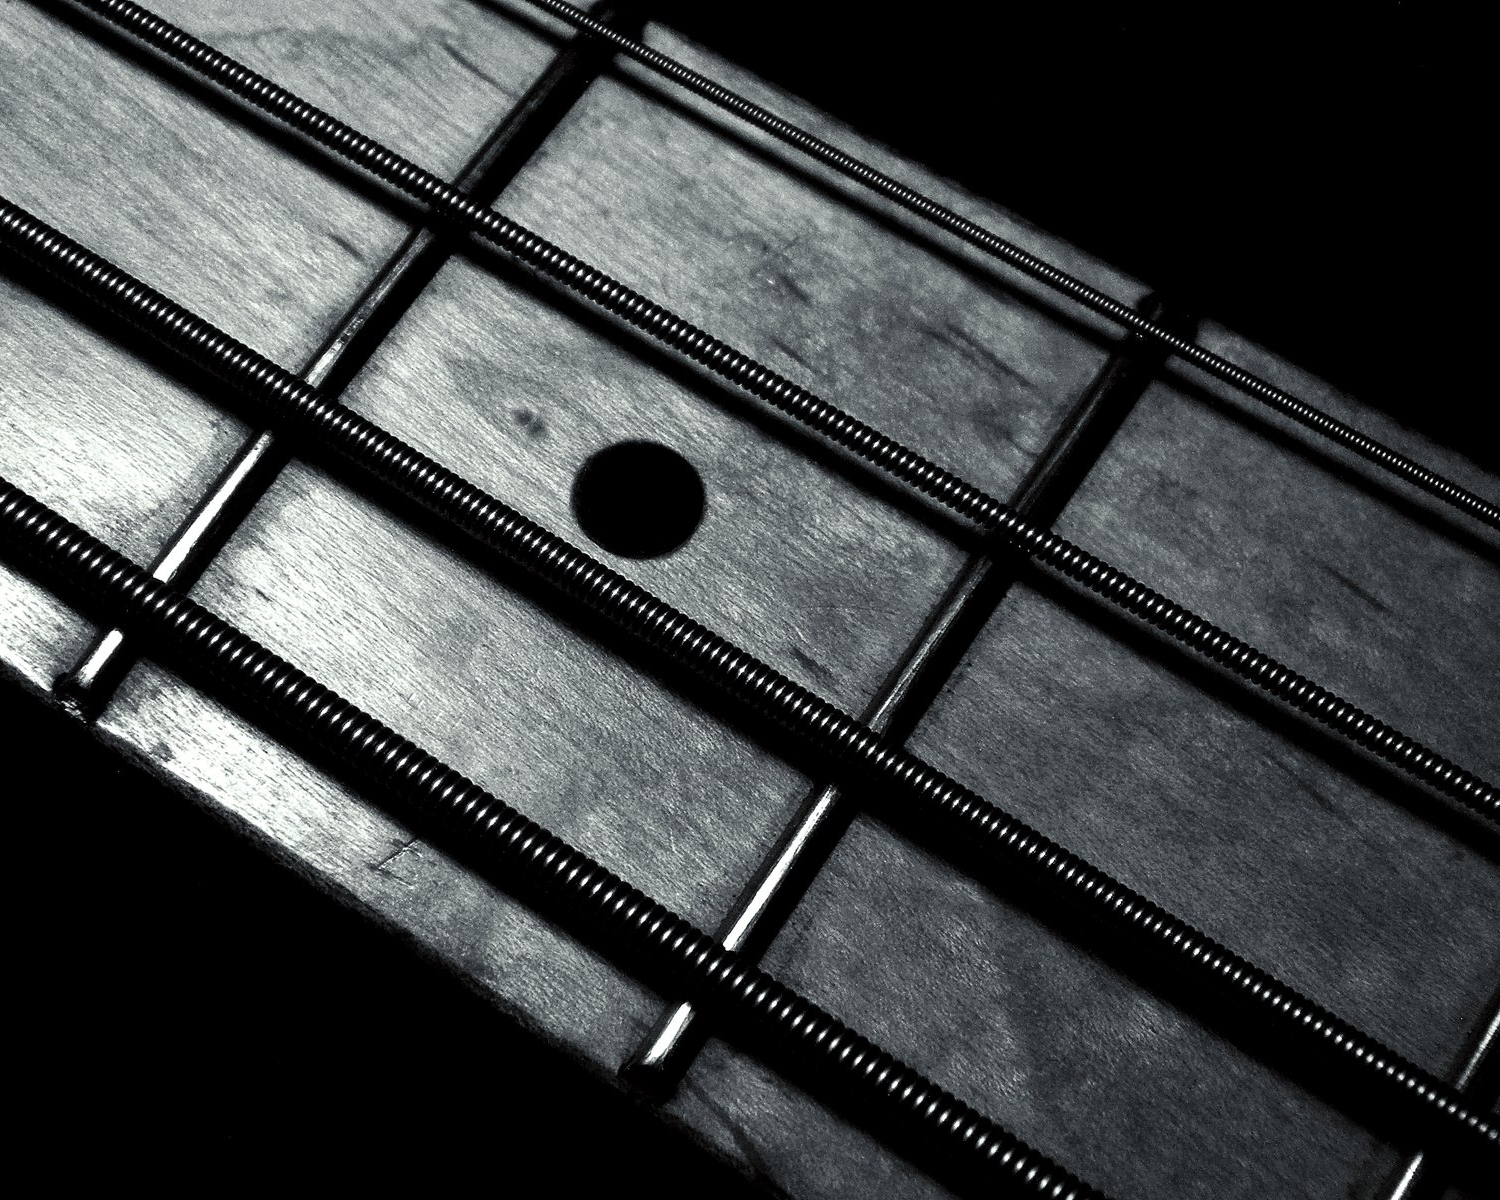 Bass Lines - You will leave this lesson with a handful of basic approaches to writing bass lines that bridge rhythm and melody.